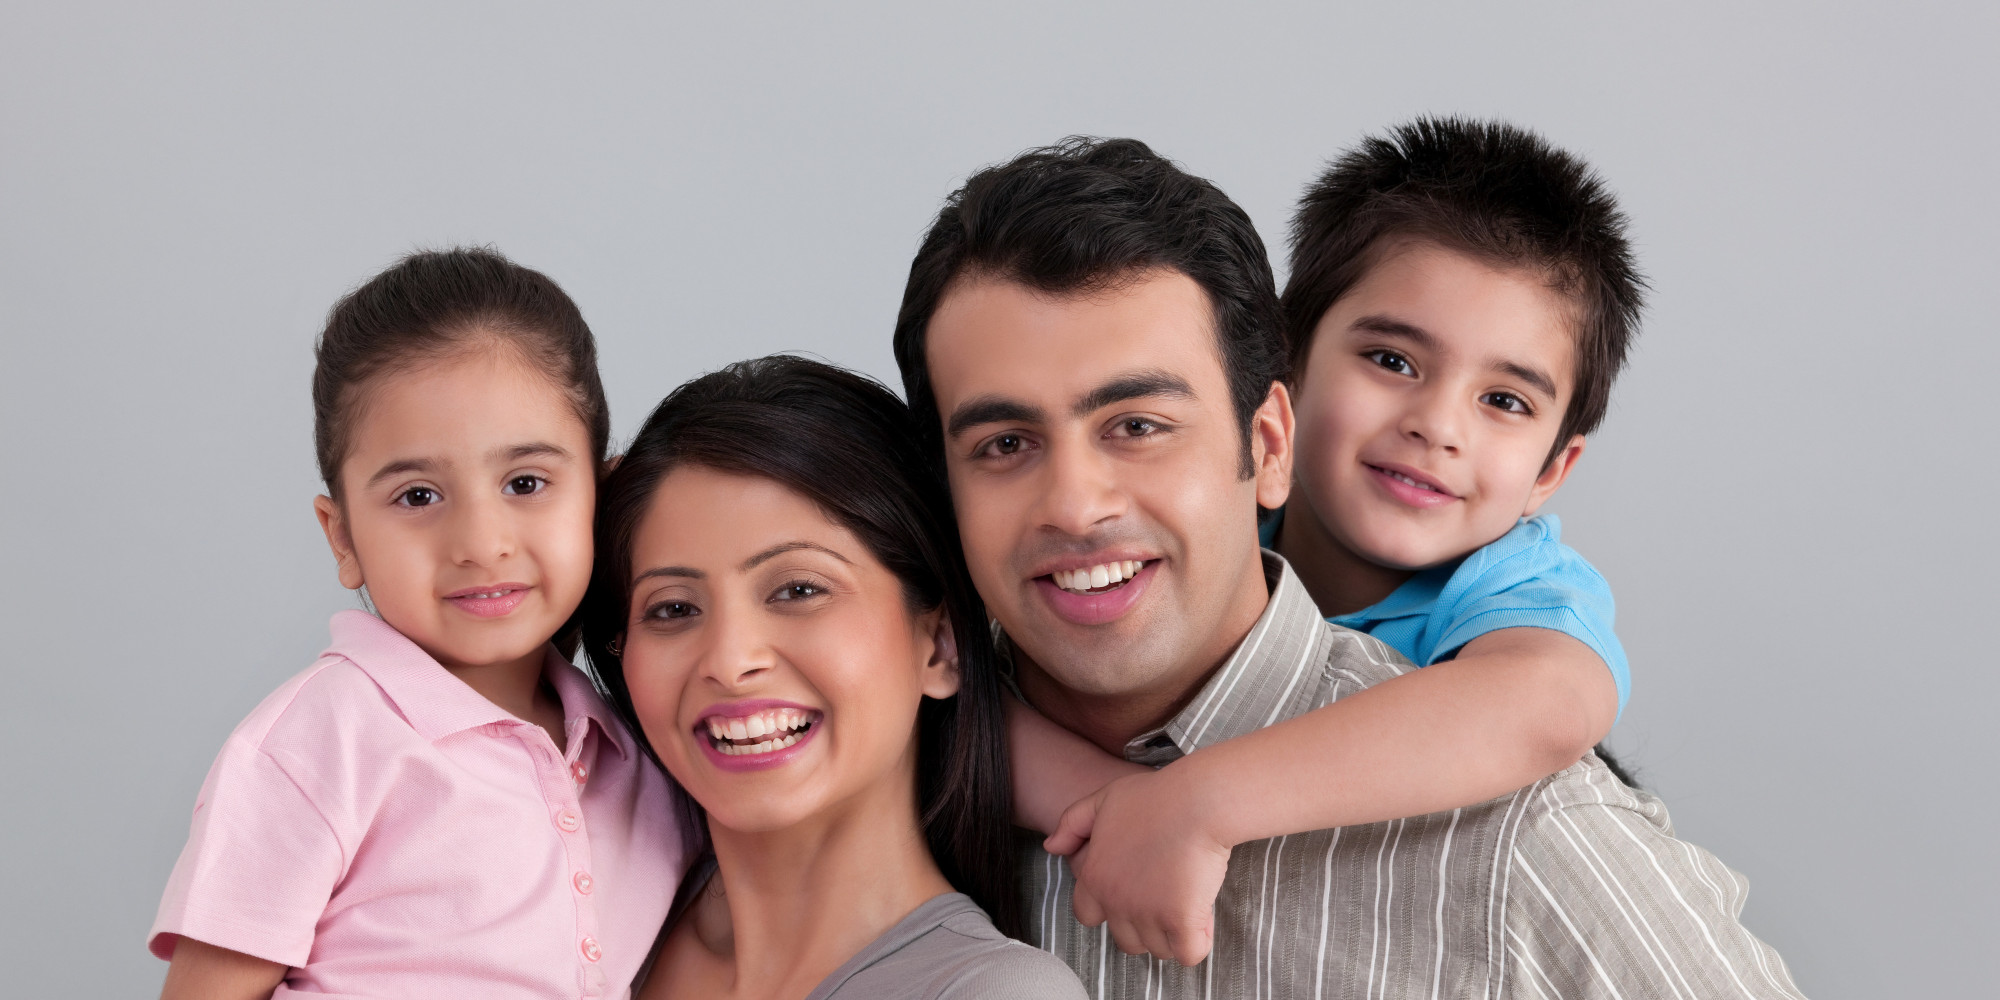 essay on benefits of living in a joint family Family is where we all belong to essay on the importance of family any values to being a part of the family four or five persons living under one roof.